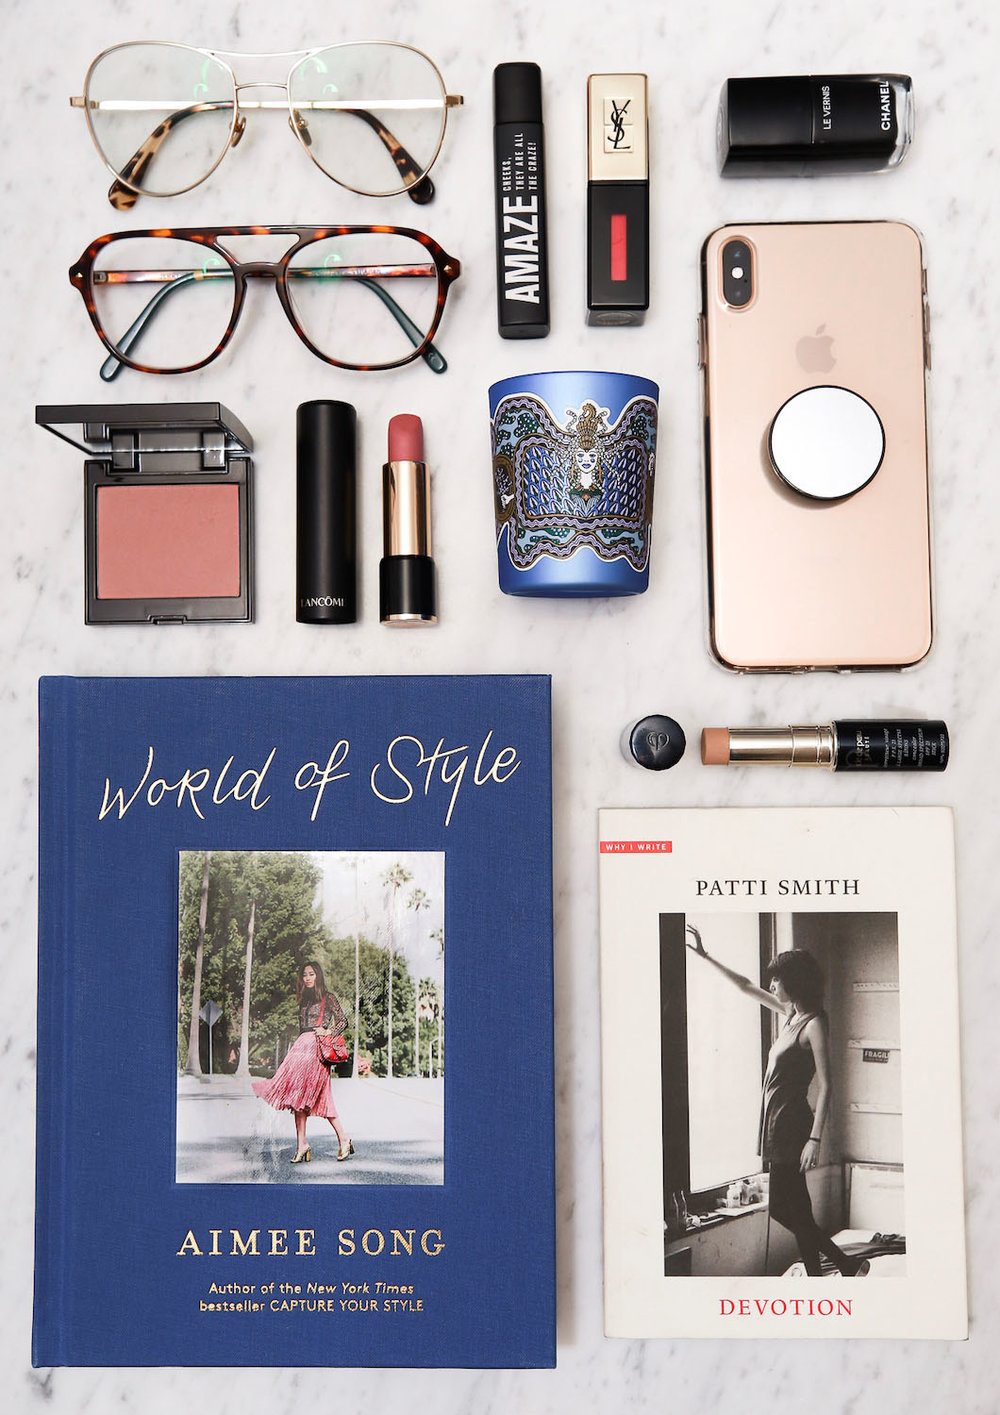 bonlook aviator glasses, diptyque holiday 2018 amber balm candel, lancome lipstick 274 sensualité, laura mercier chai blush, patti smith devotion book, chanel nail polish in celebrtity, cle de peau concealer, isabel marant x l'oreal amaze - woahstyle.jpg